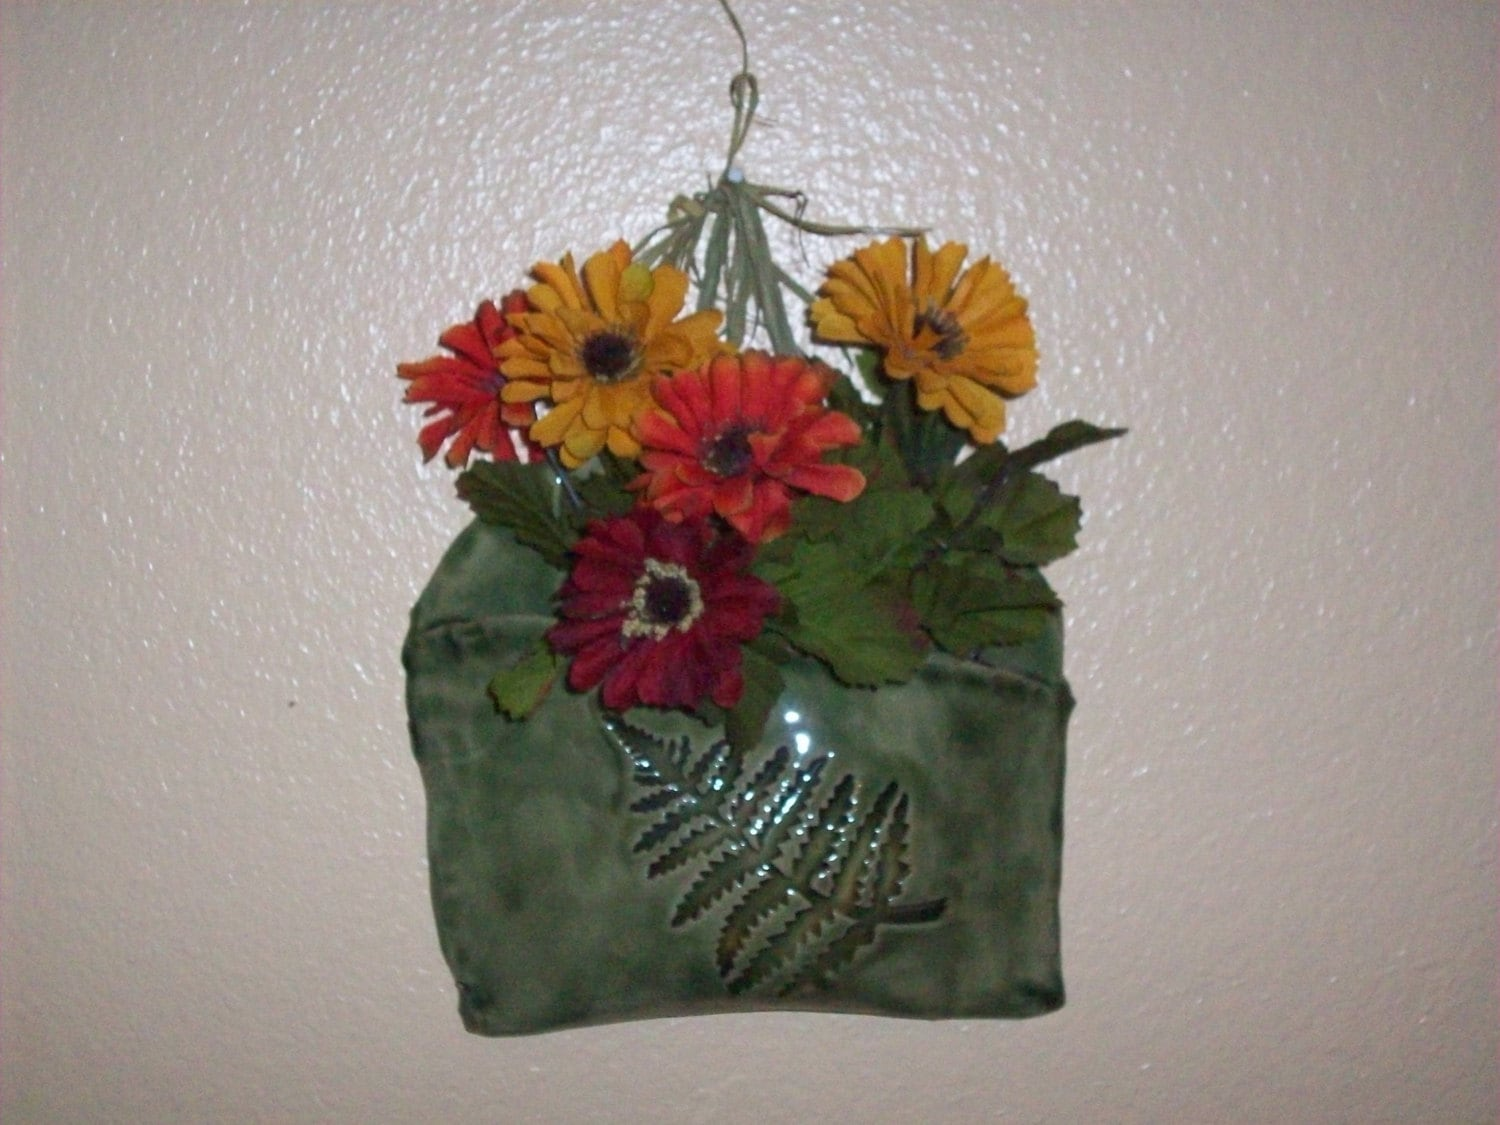 Wall Pocket Flower Holder Floral Sconce Ceramic by Clayworkz on Pocket Wall Sconce For Flowers id=15217